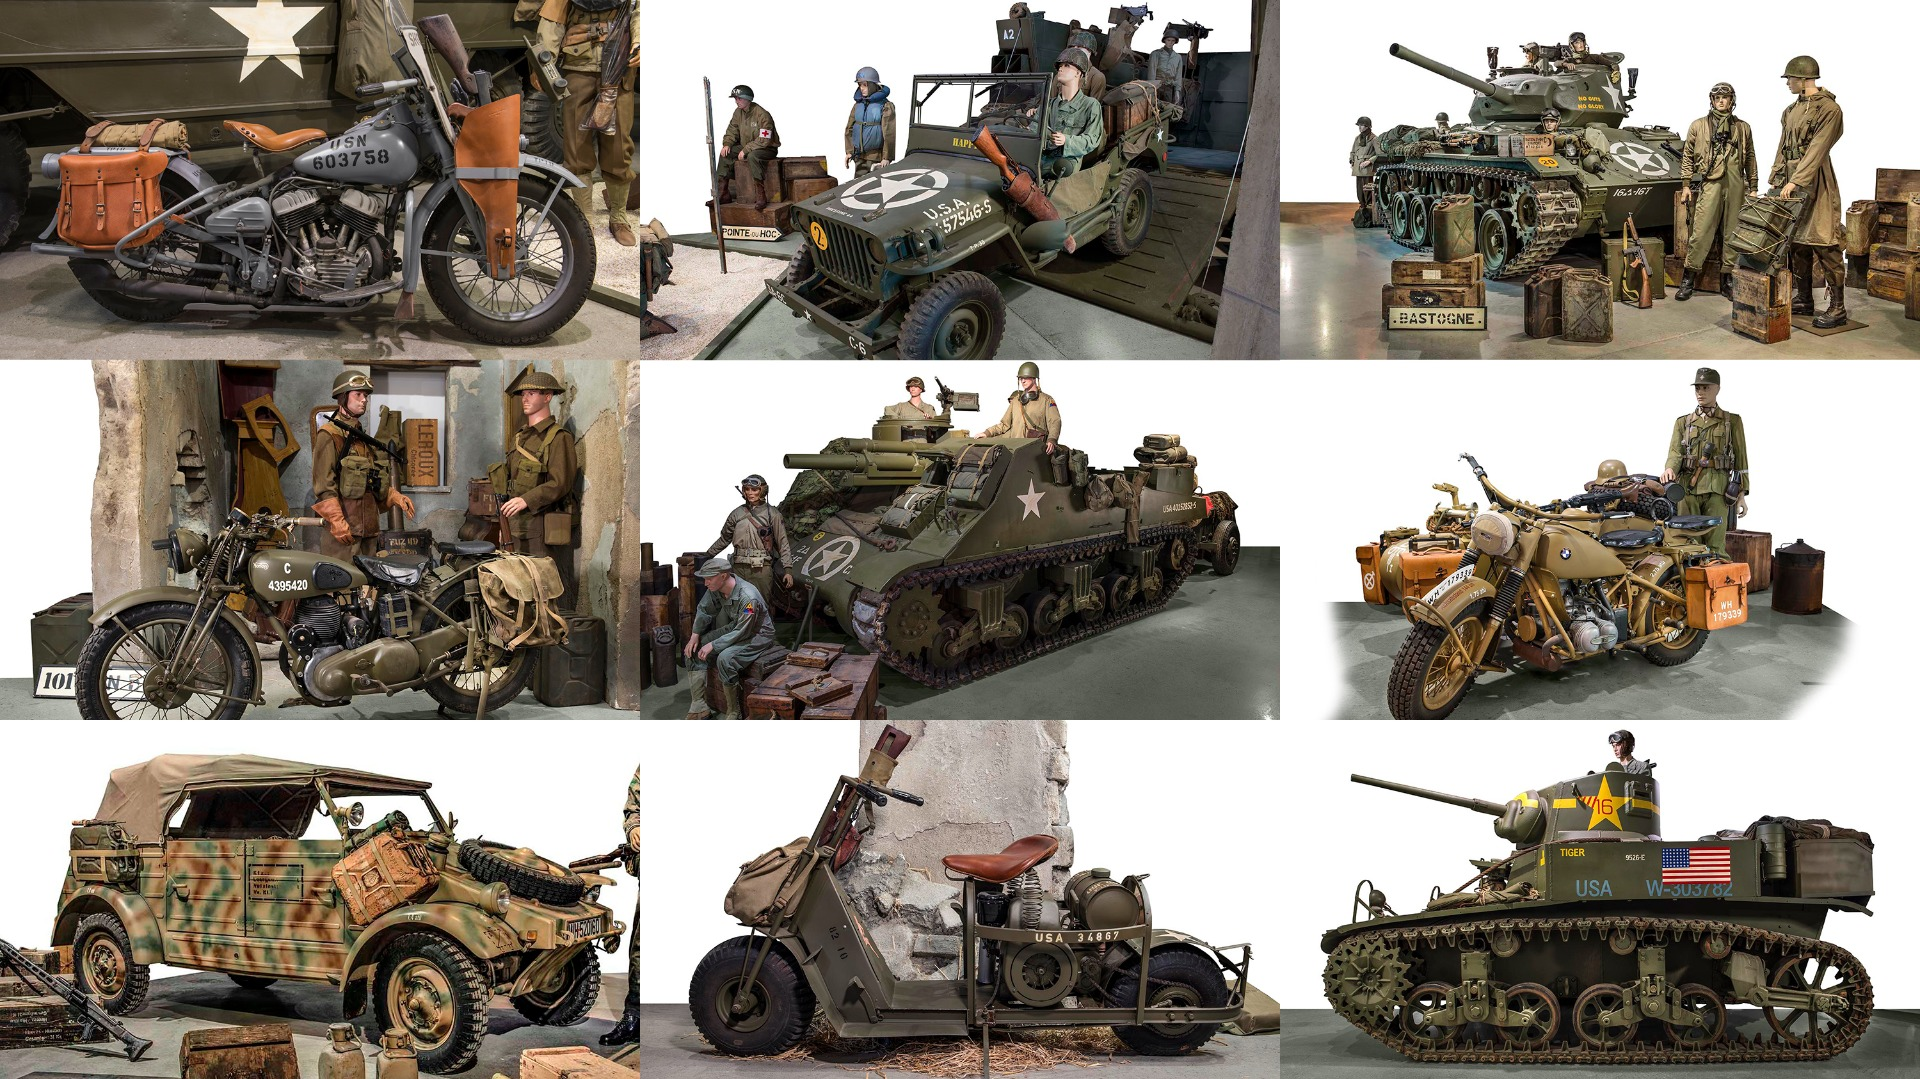 D-Day auction illustrates a pivotal point in the history of technology